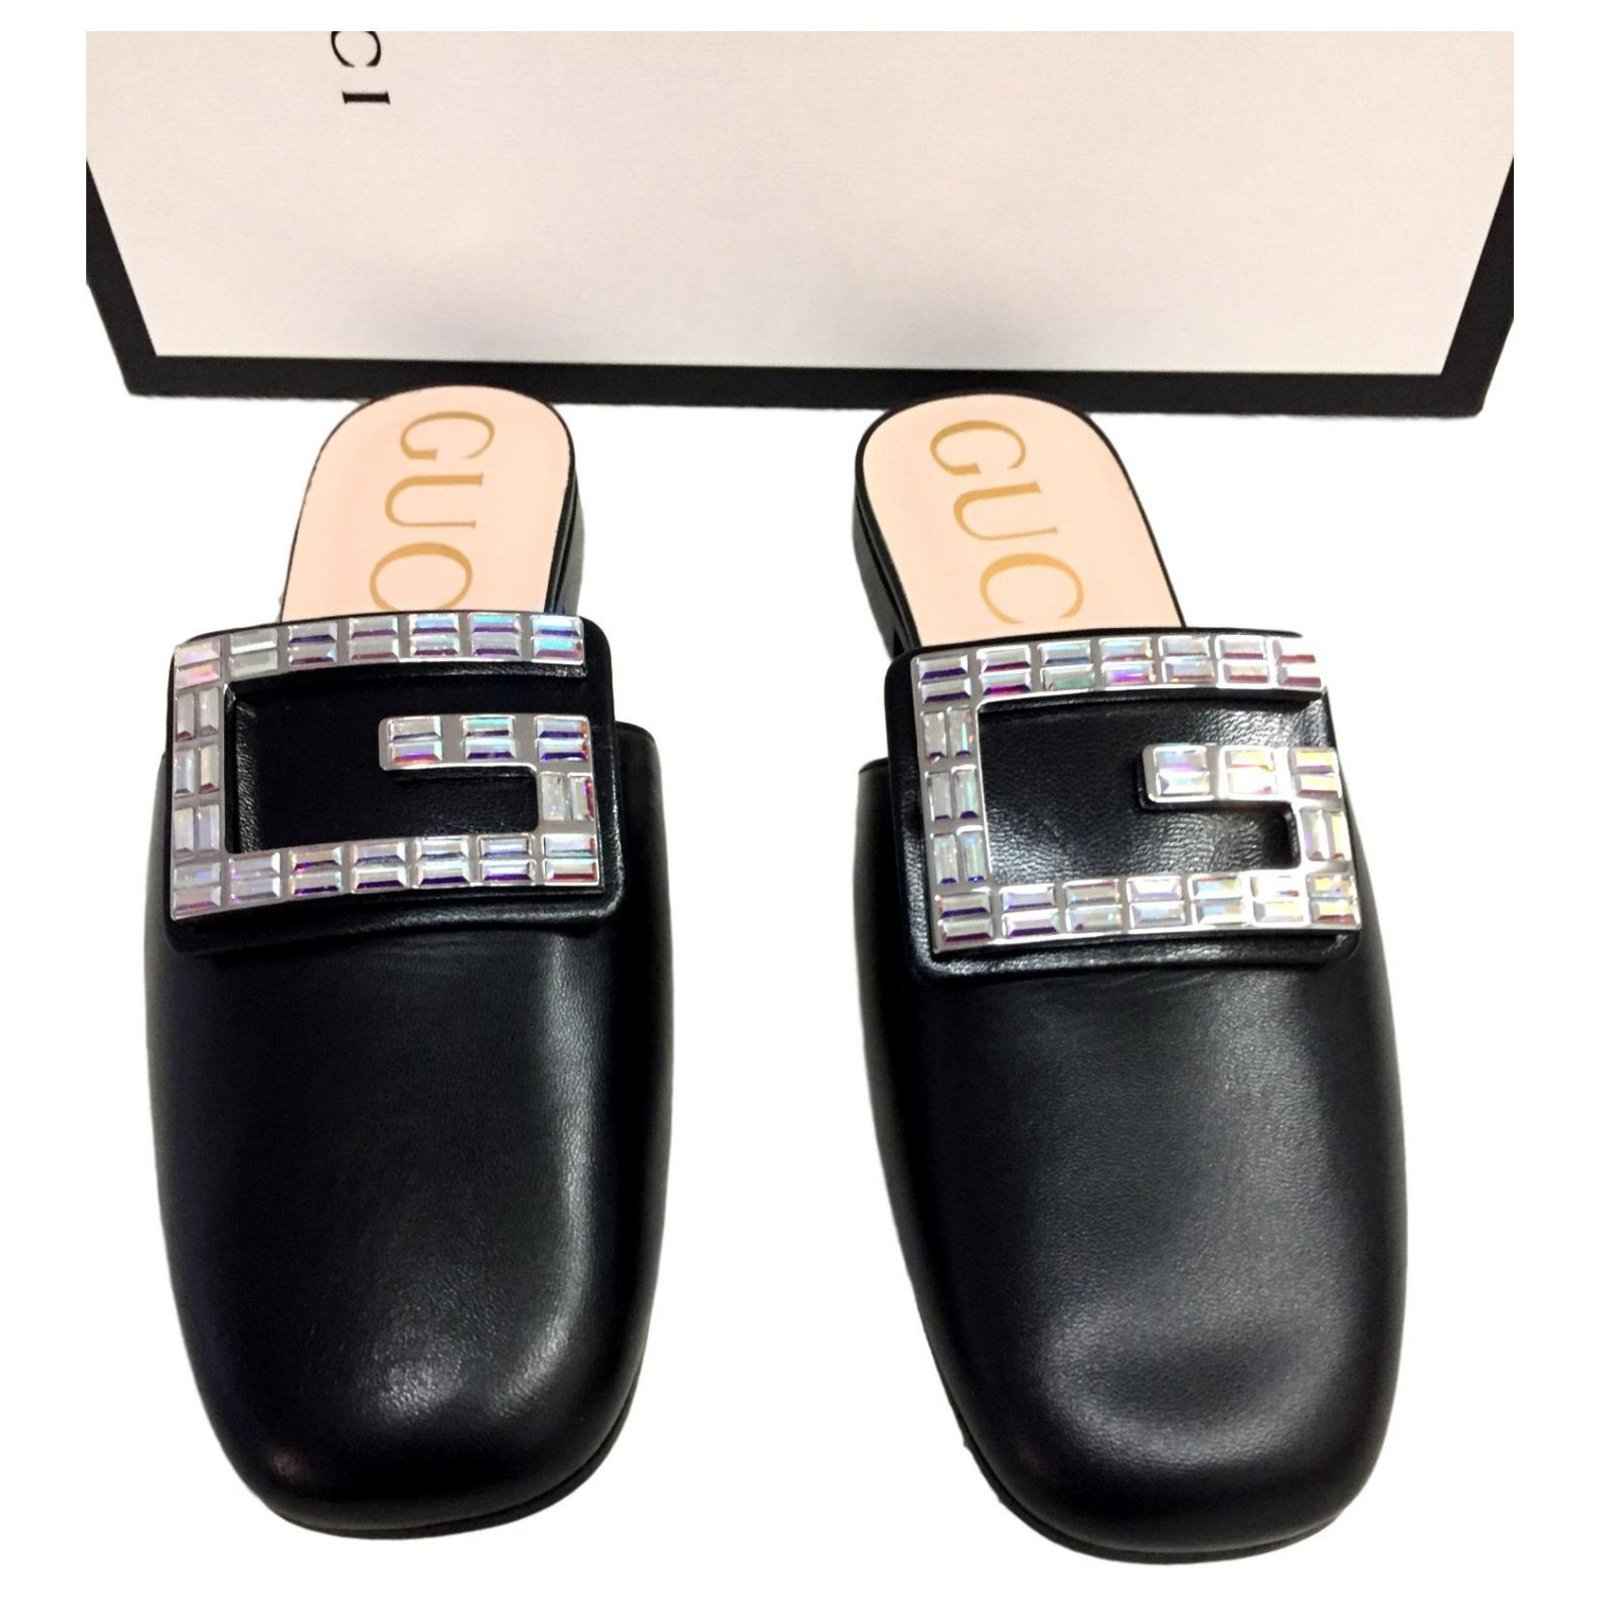 Gucci Gucci Slippers Crystal G Shoes Mules Leather Black Ref 127017 Joli Closet